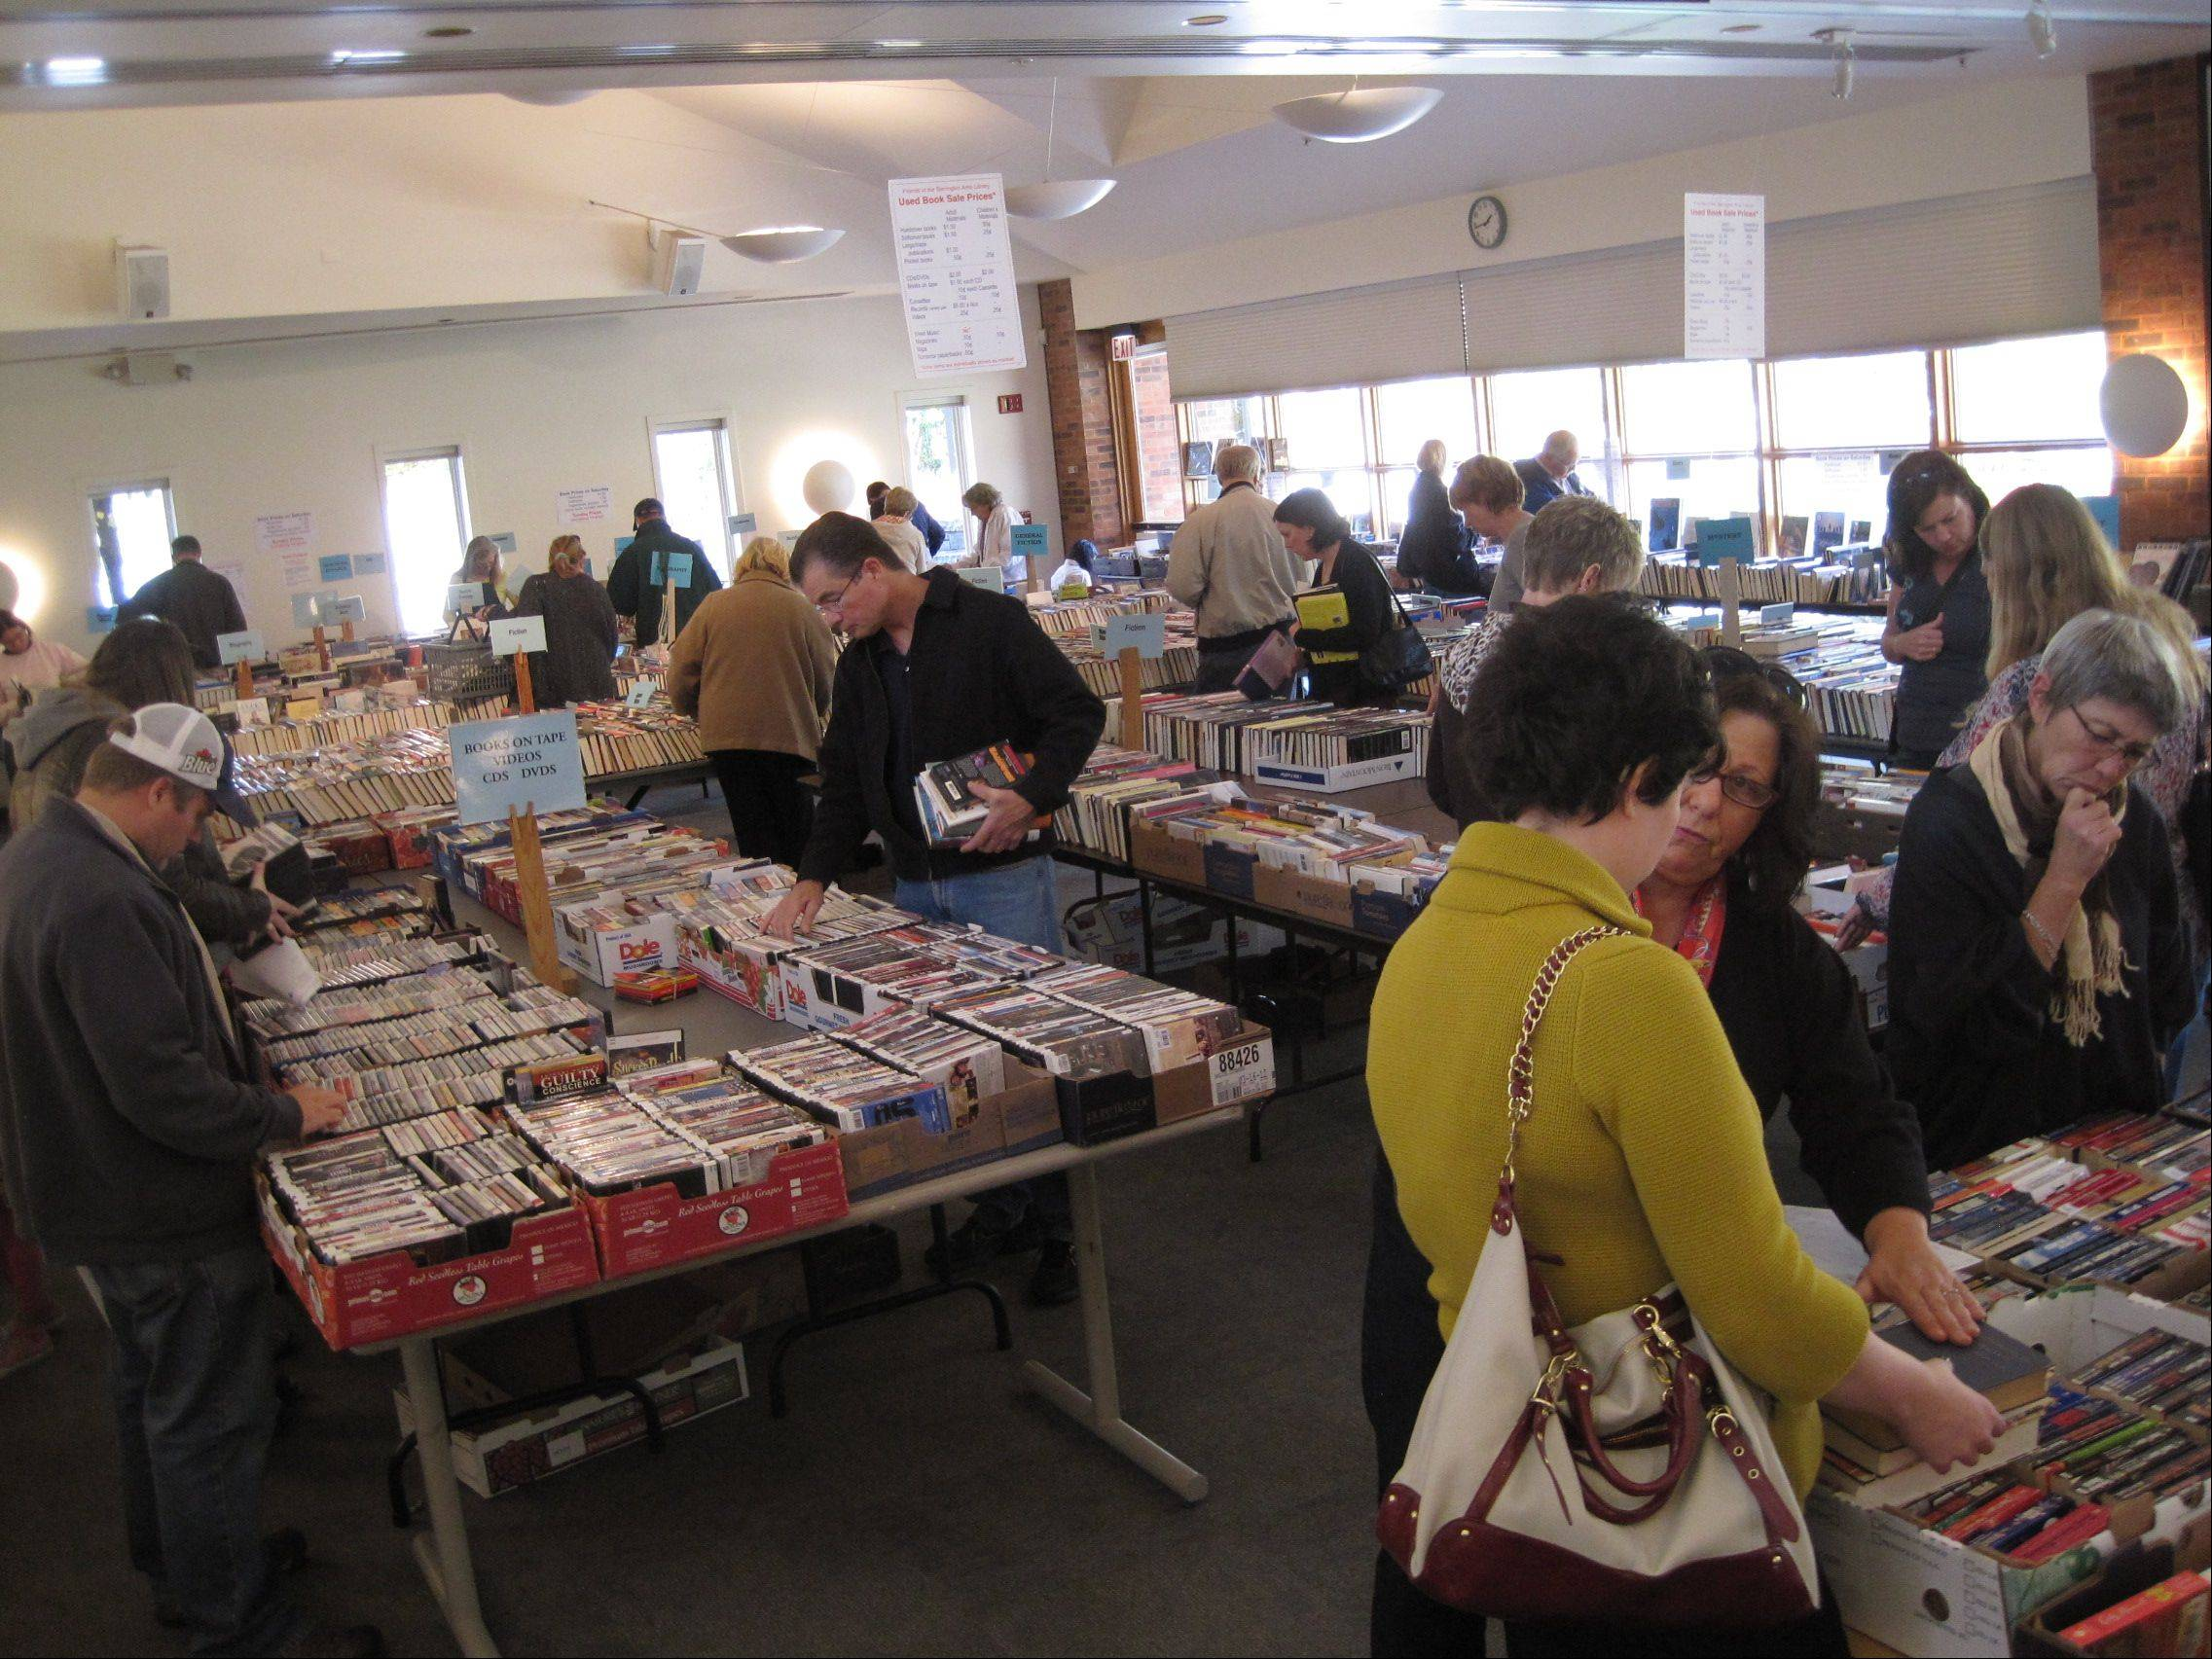 Attendance at the Friends of the Barrington Area Library book sale last weekend was down from past years, organization members said.